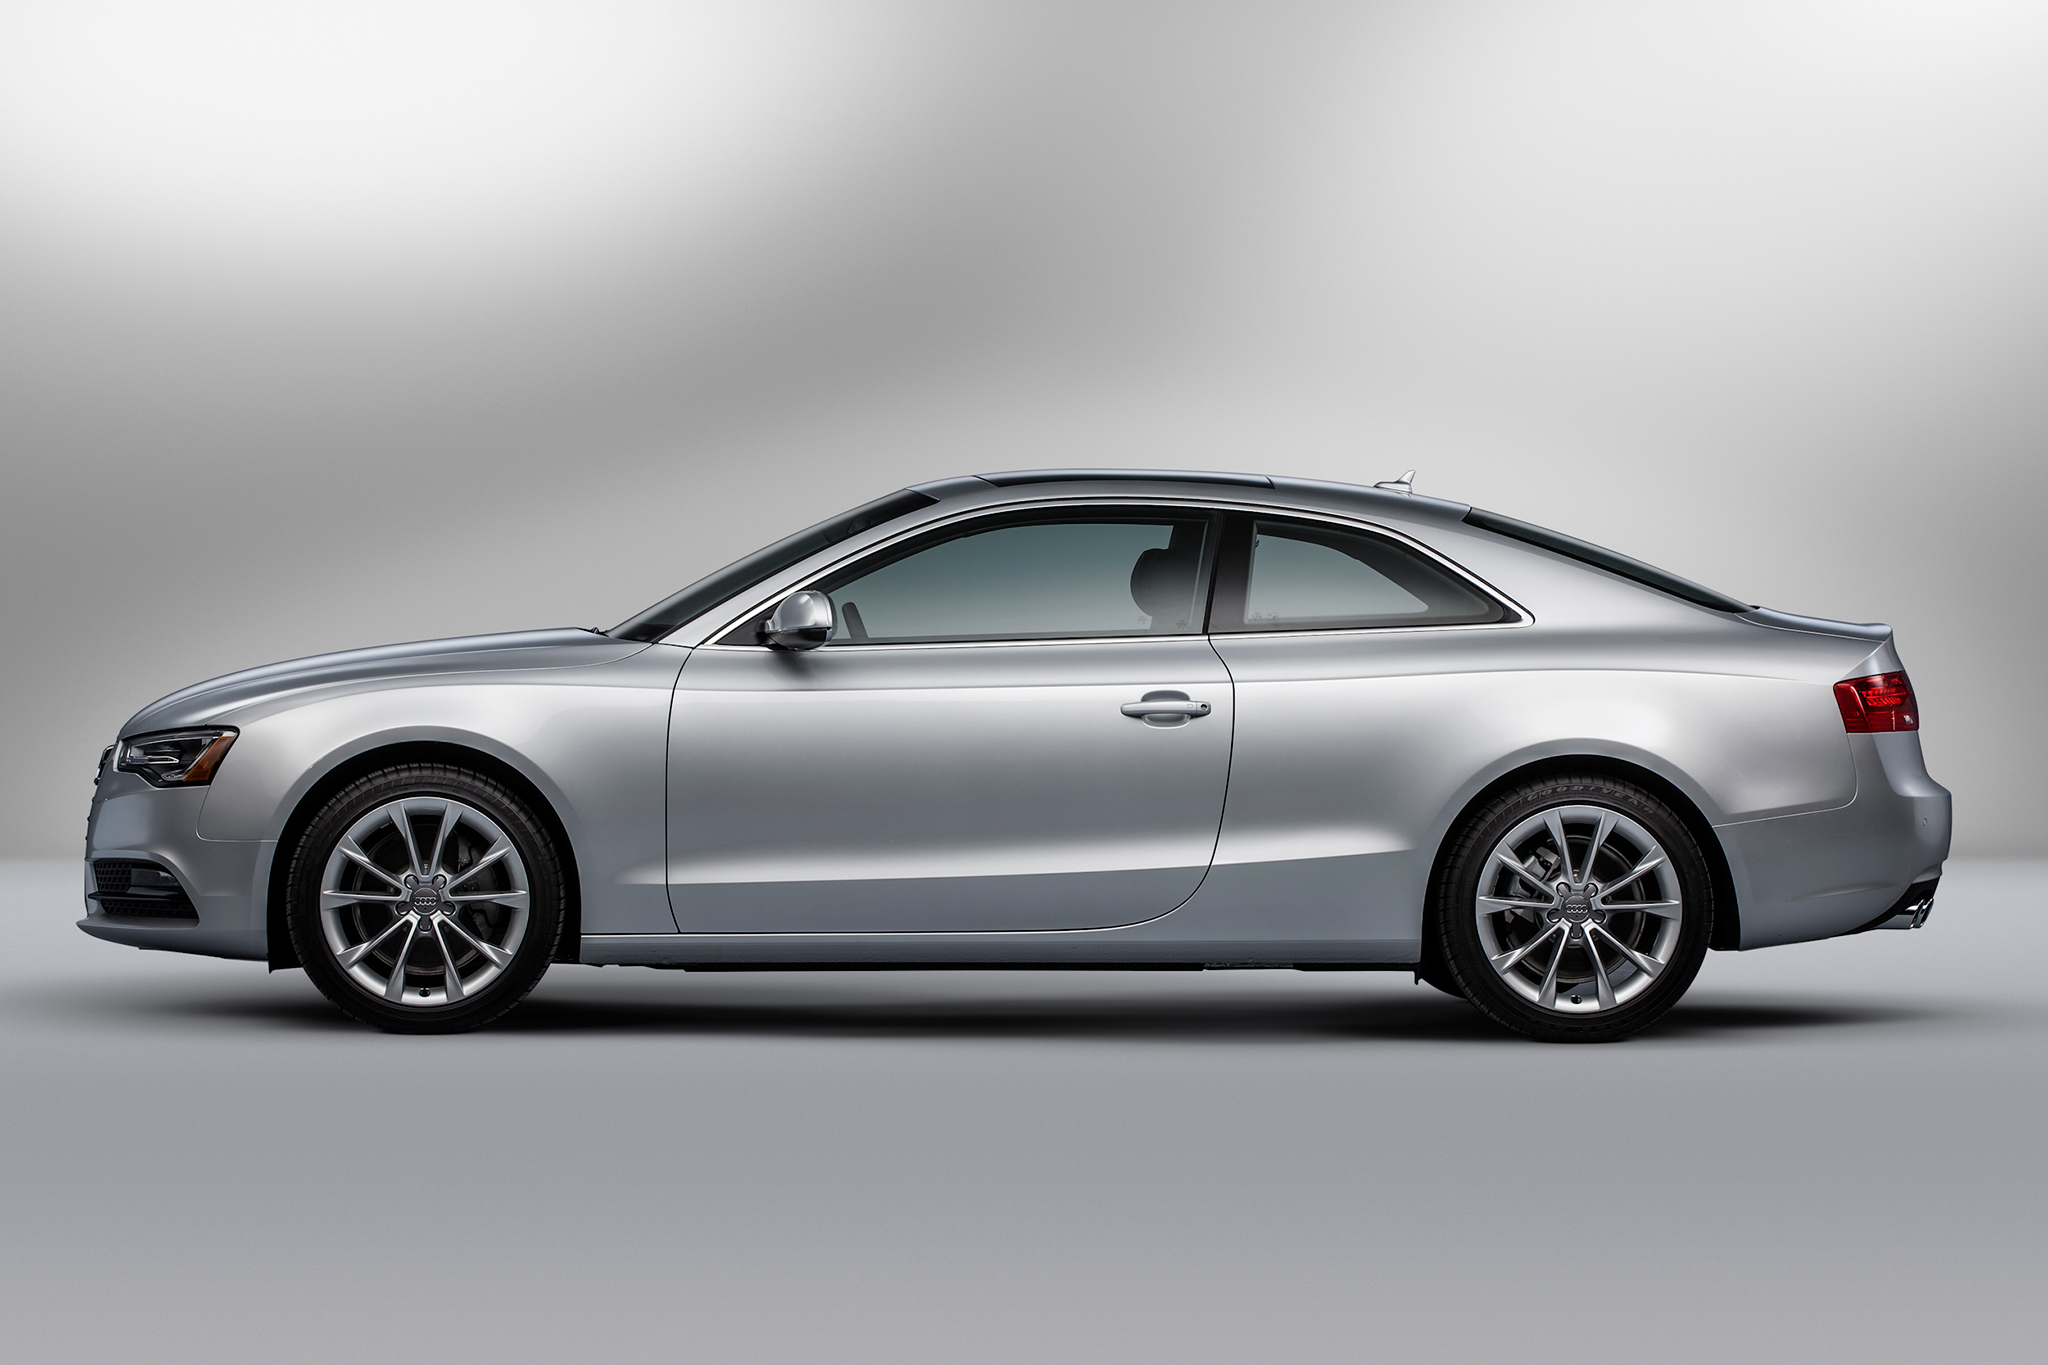 2014 Audi A5 Review Ratings Specs Prices And Photos | Autos Post